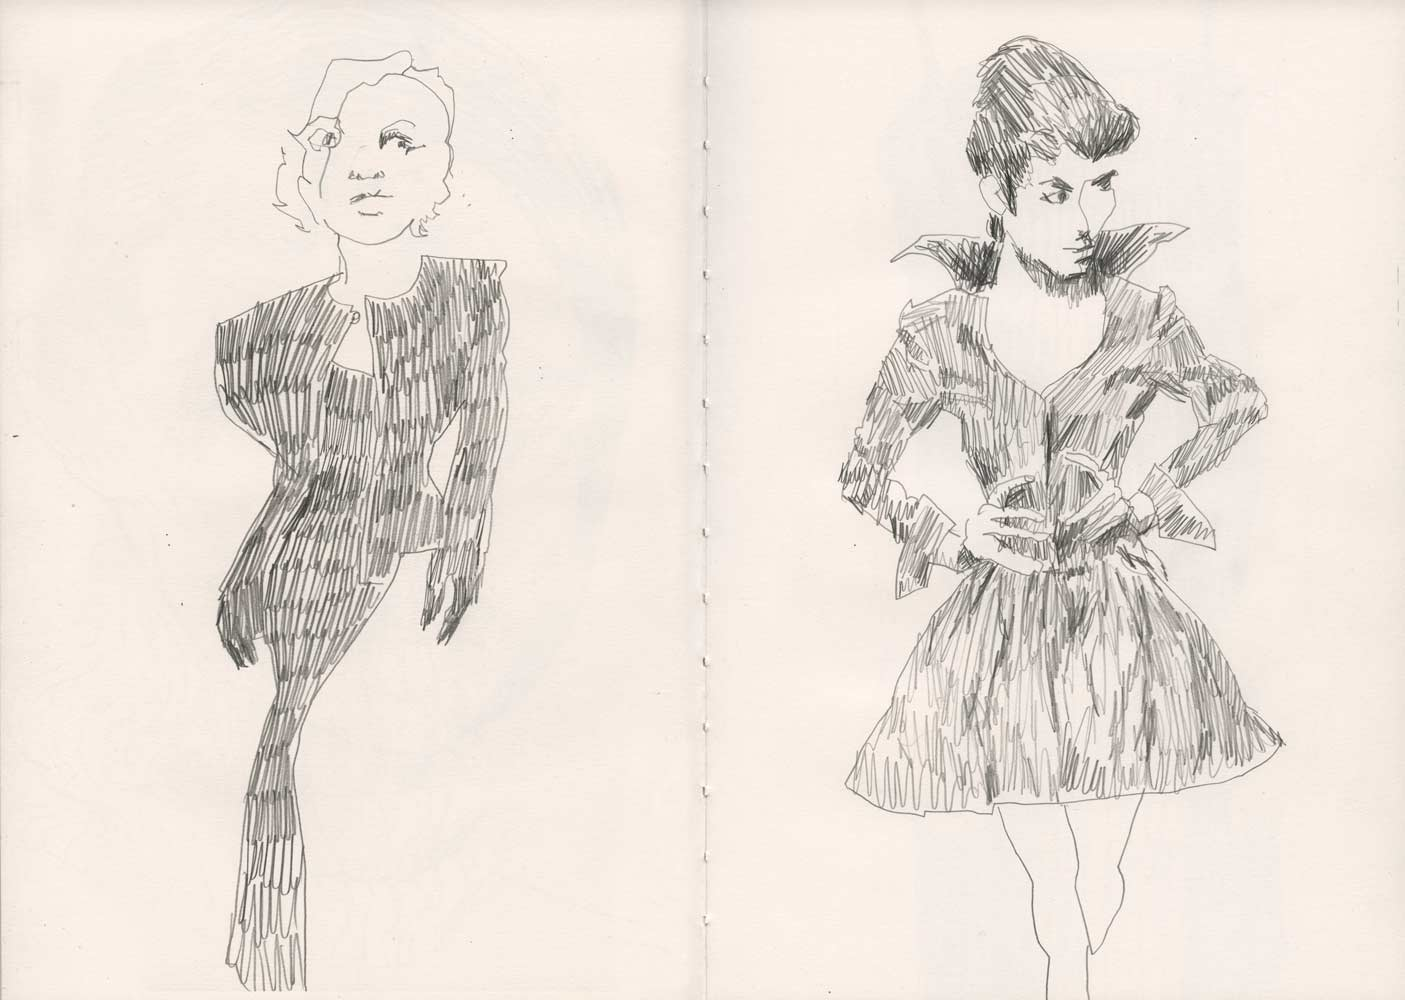 Sketchbook 03   Line Drawings  Mixed Media Sketches and Studies     Pencil drawings  anti fashion